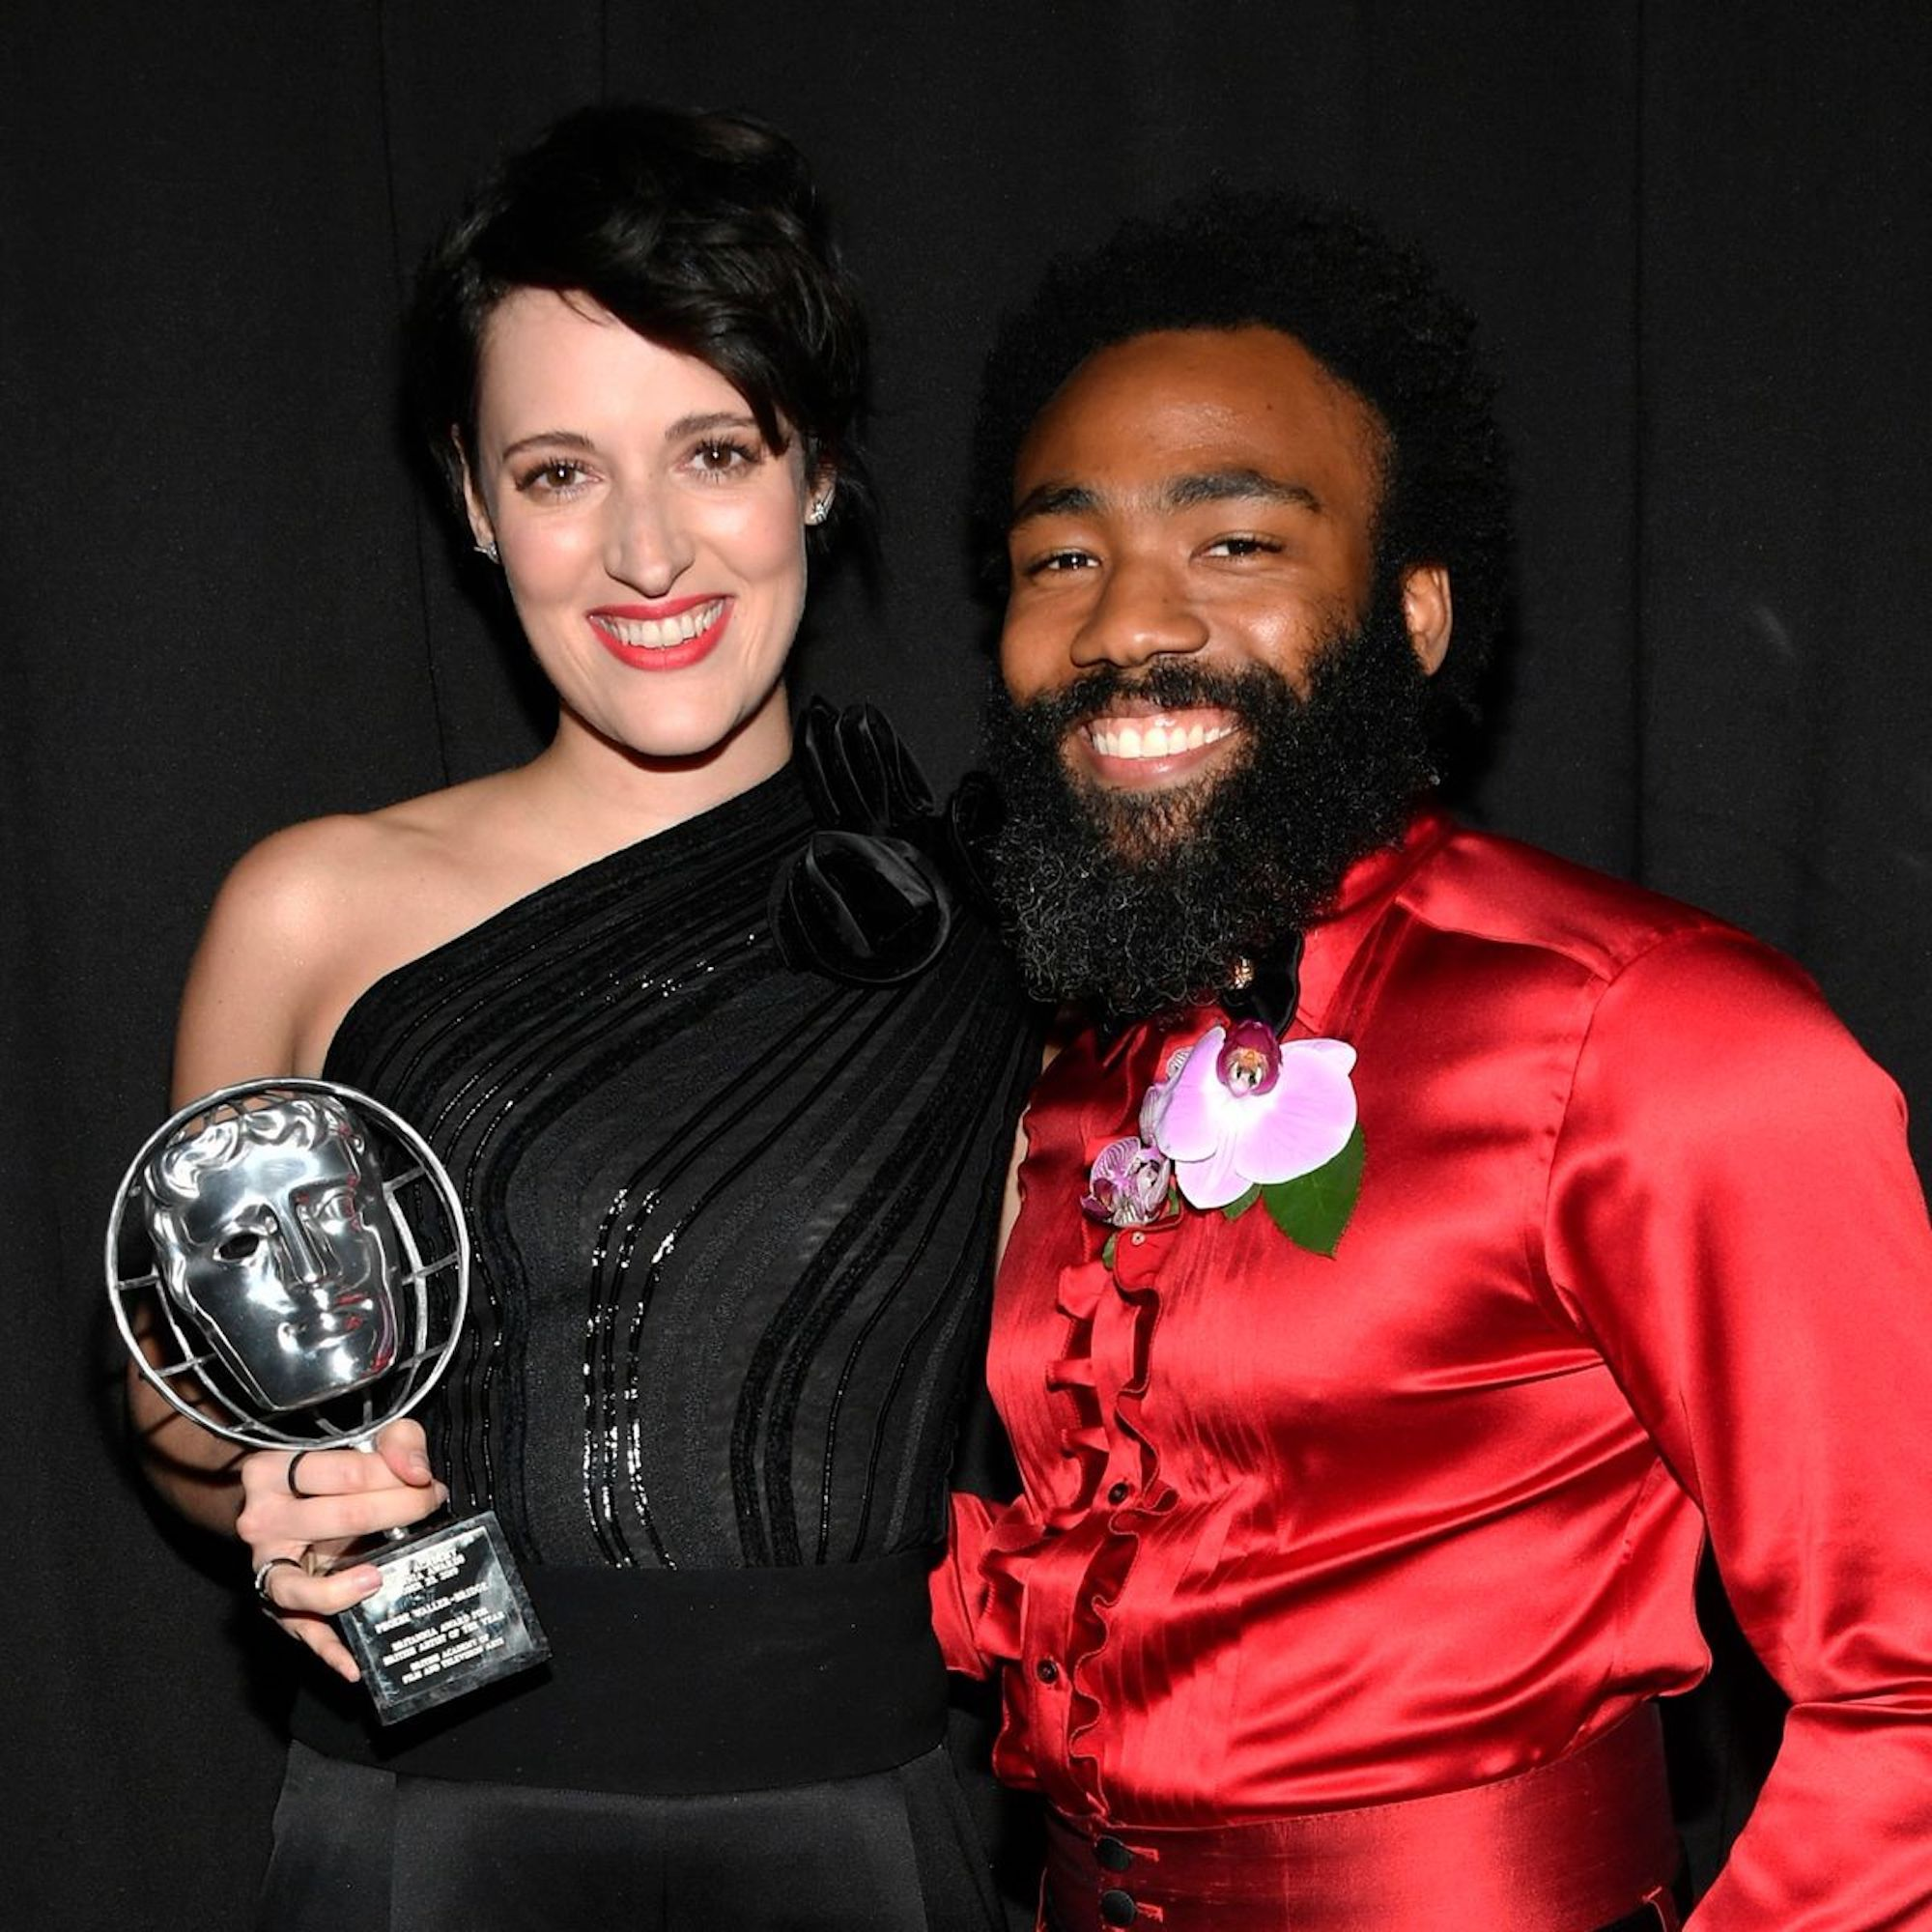 Phoebe Waller-Bridge and Donald Glover at awards ceremony